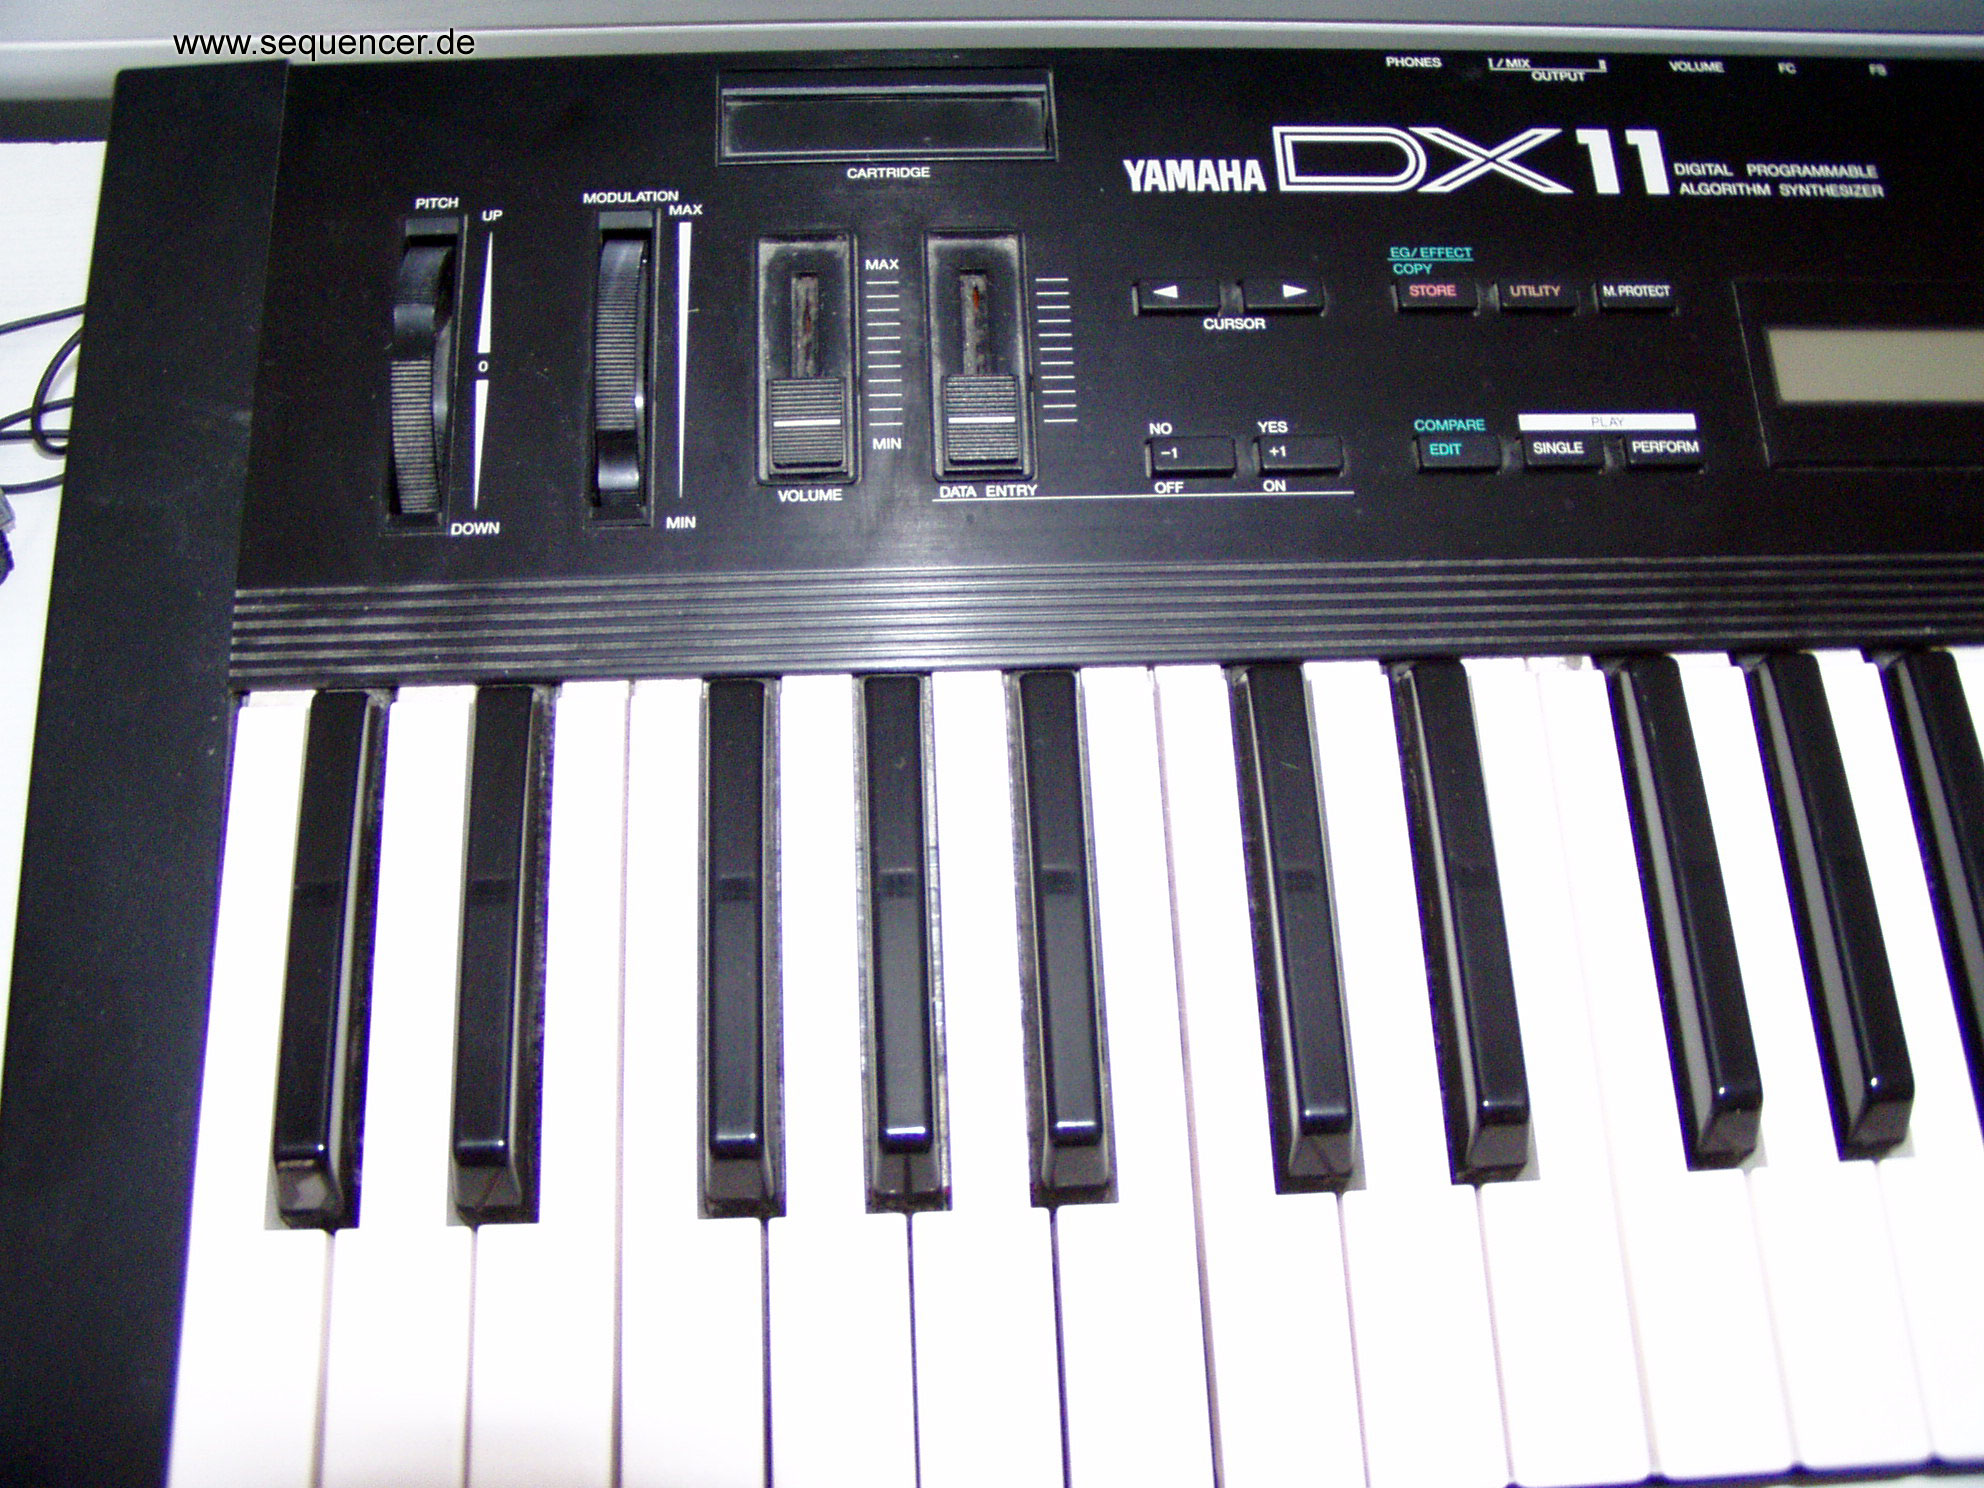 DX-11 Yamaha DX-11 synthesizer